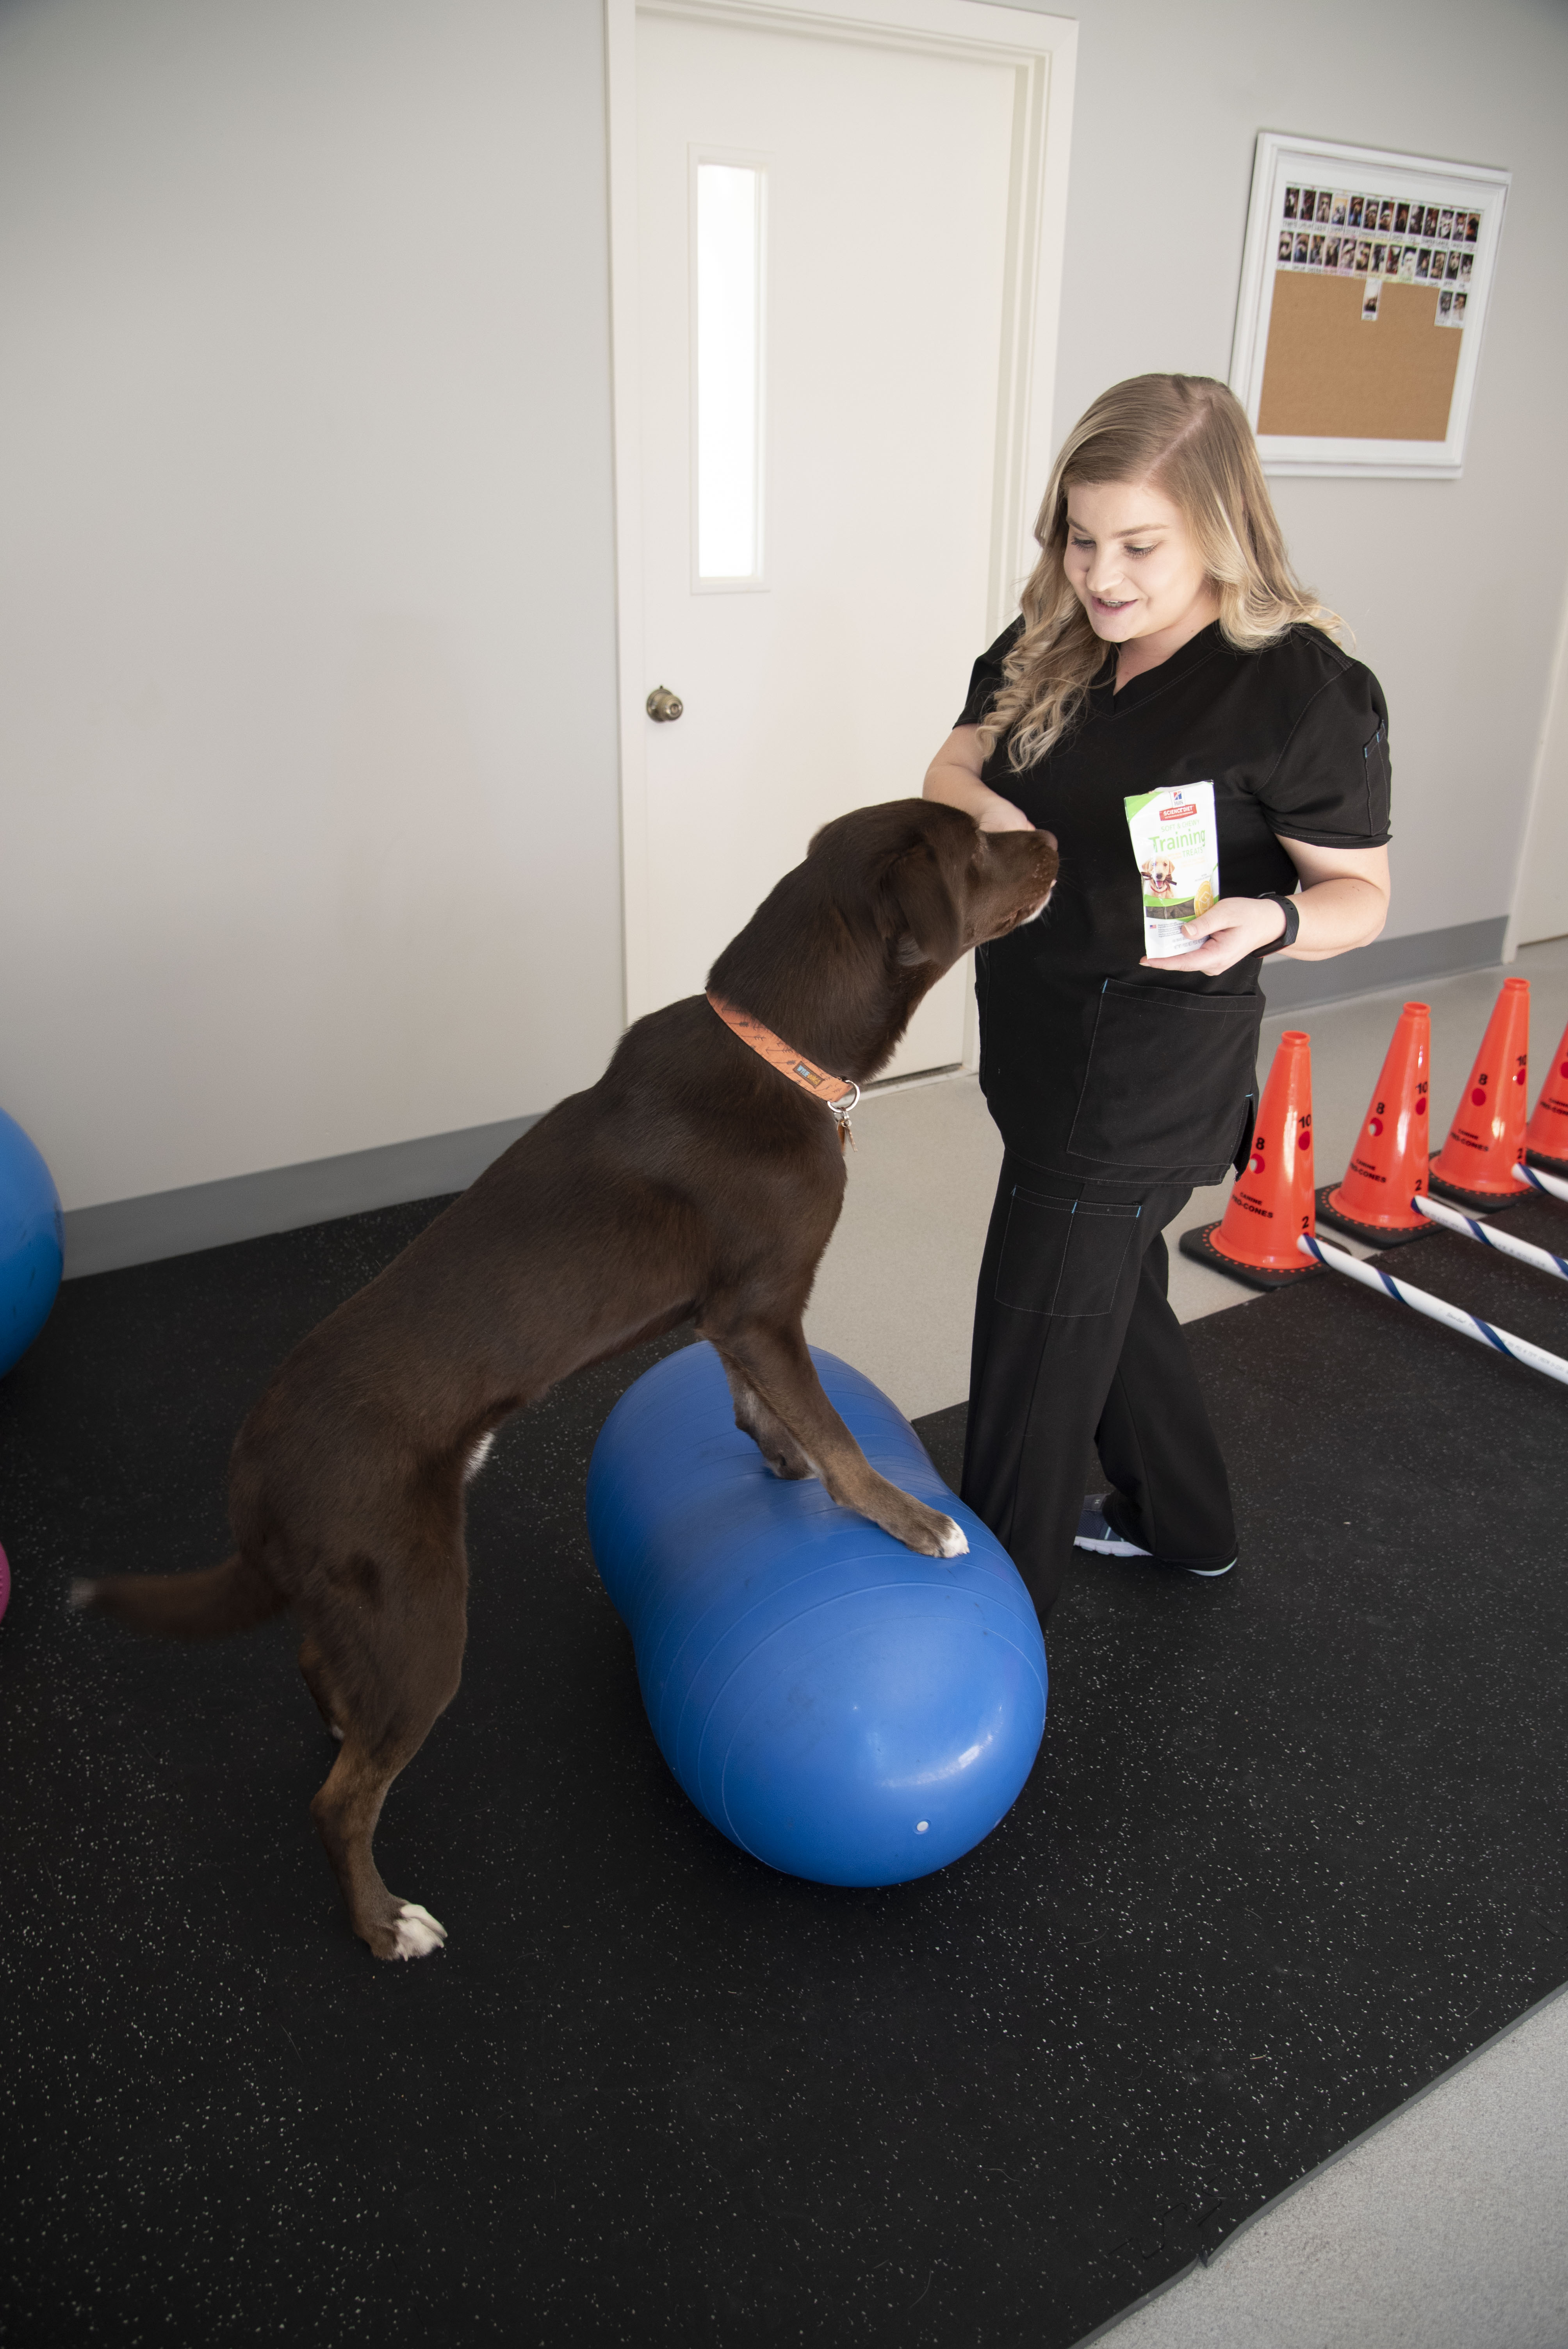 A dog balances on a stabilization ball